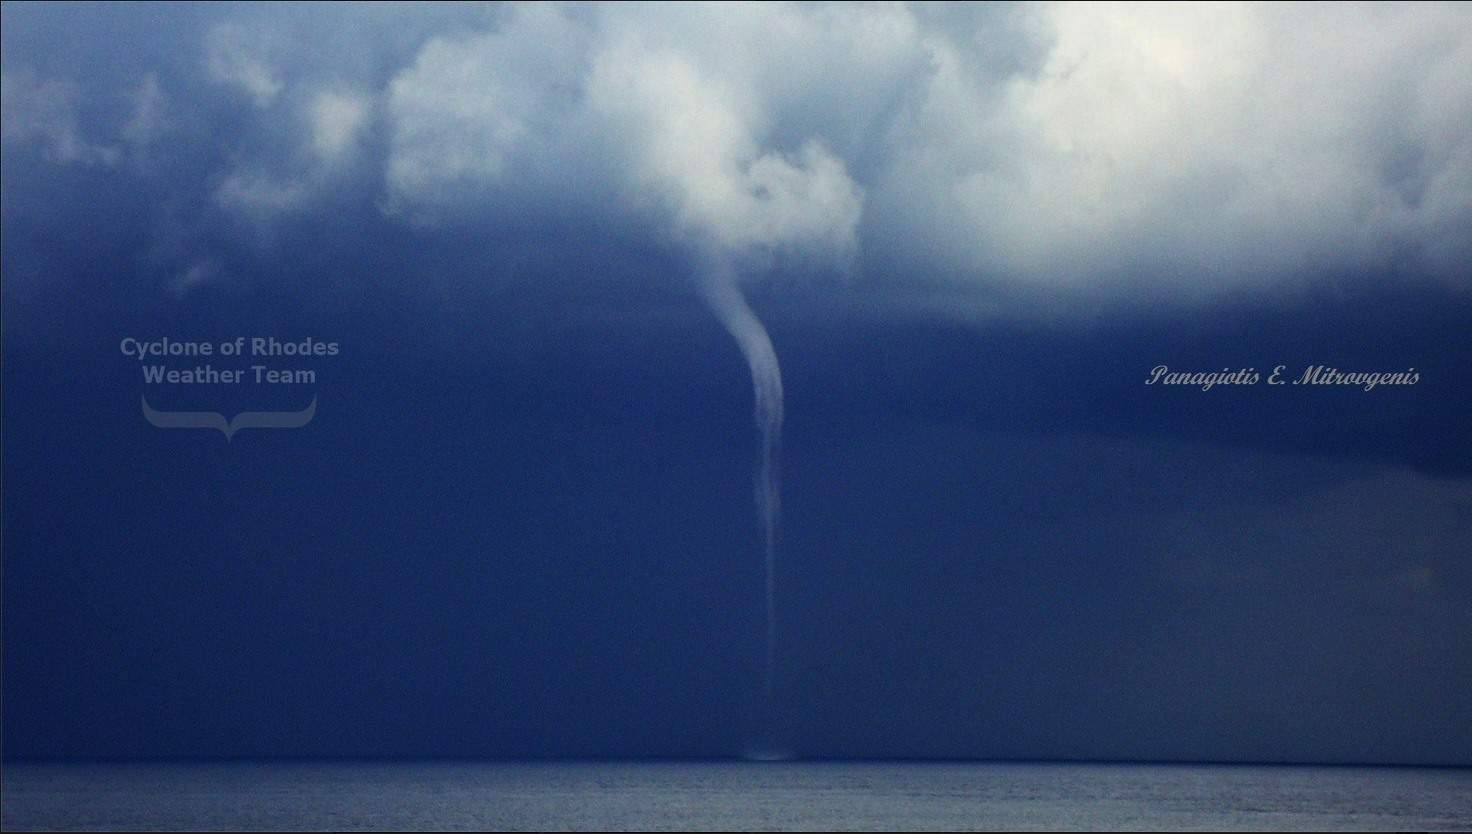 double waterspout in Rhodes island 14-2-2015